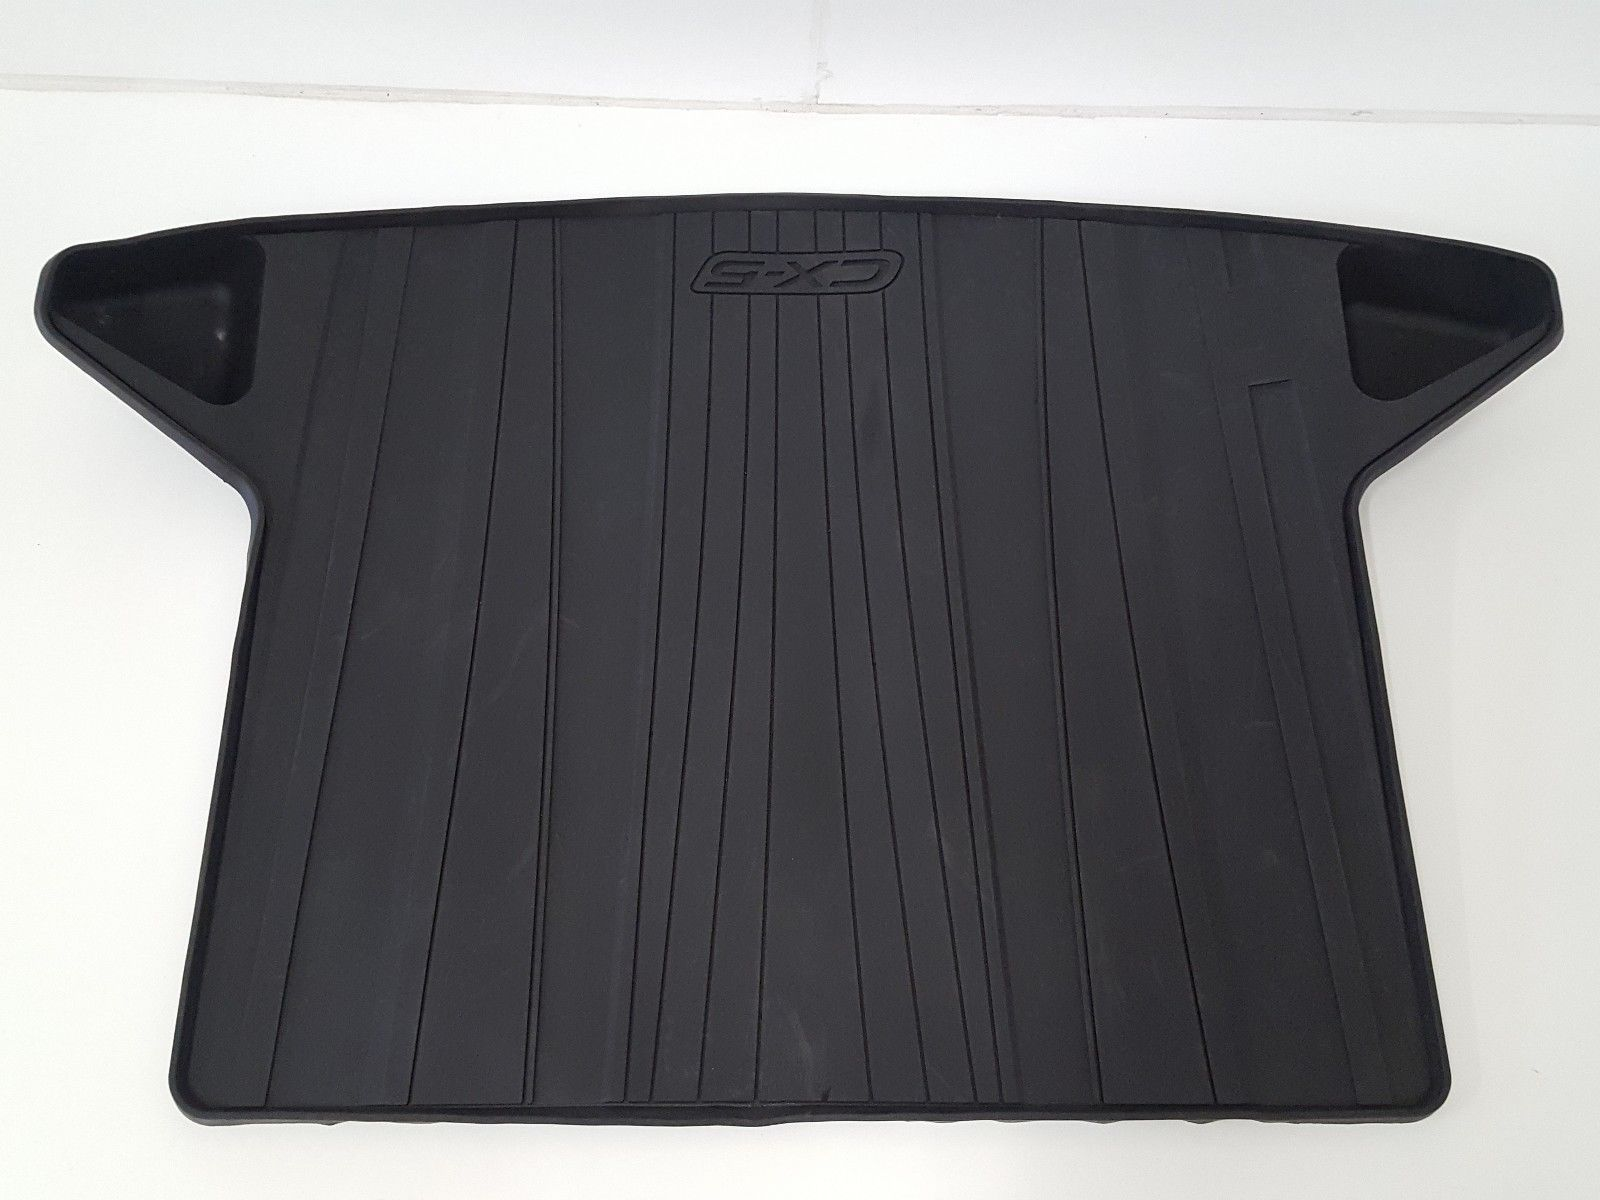 2017 2016 Mazda Cx 5 Rear Rubber Cargo Mat Oem Used 0000 8d R01 Home Other